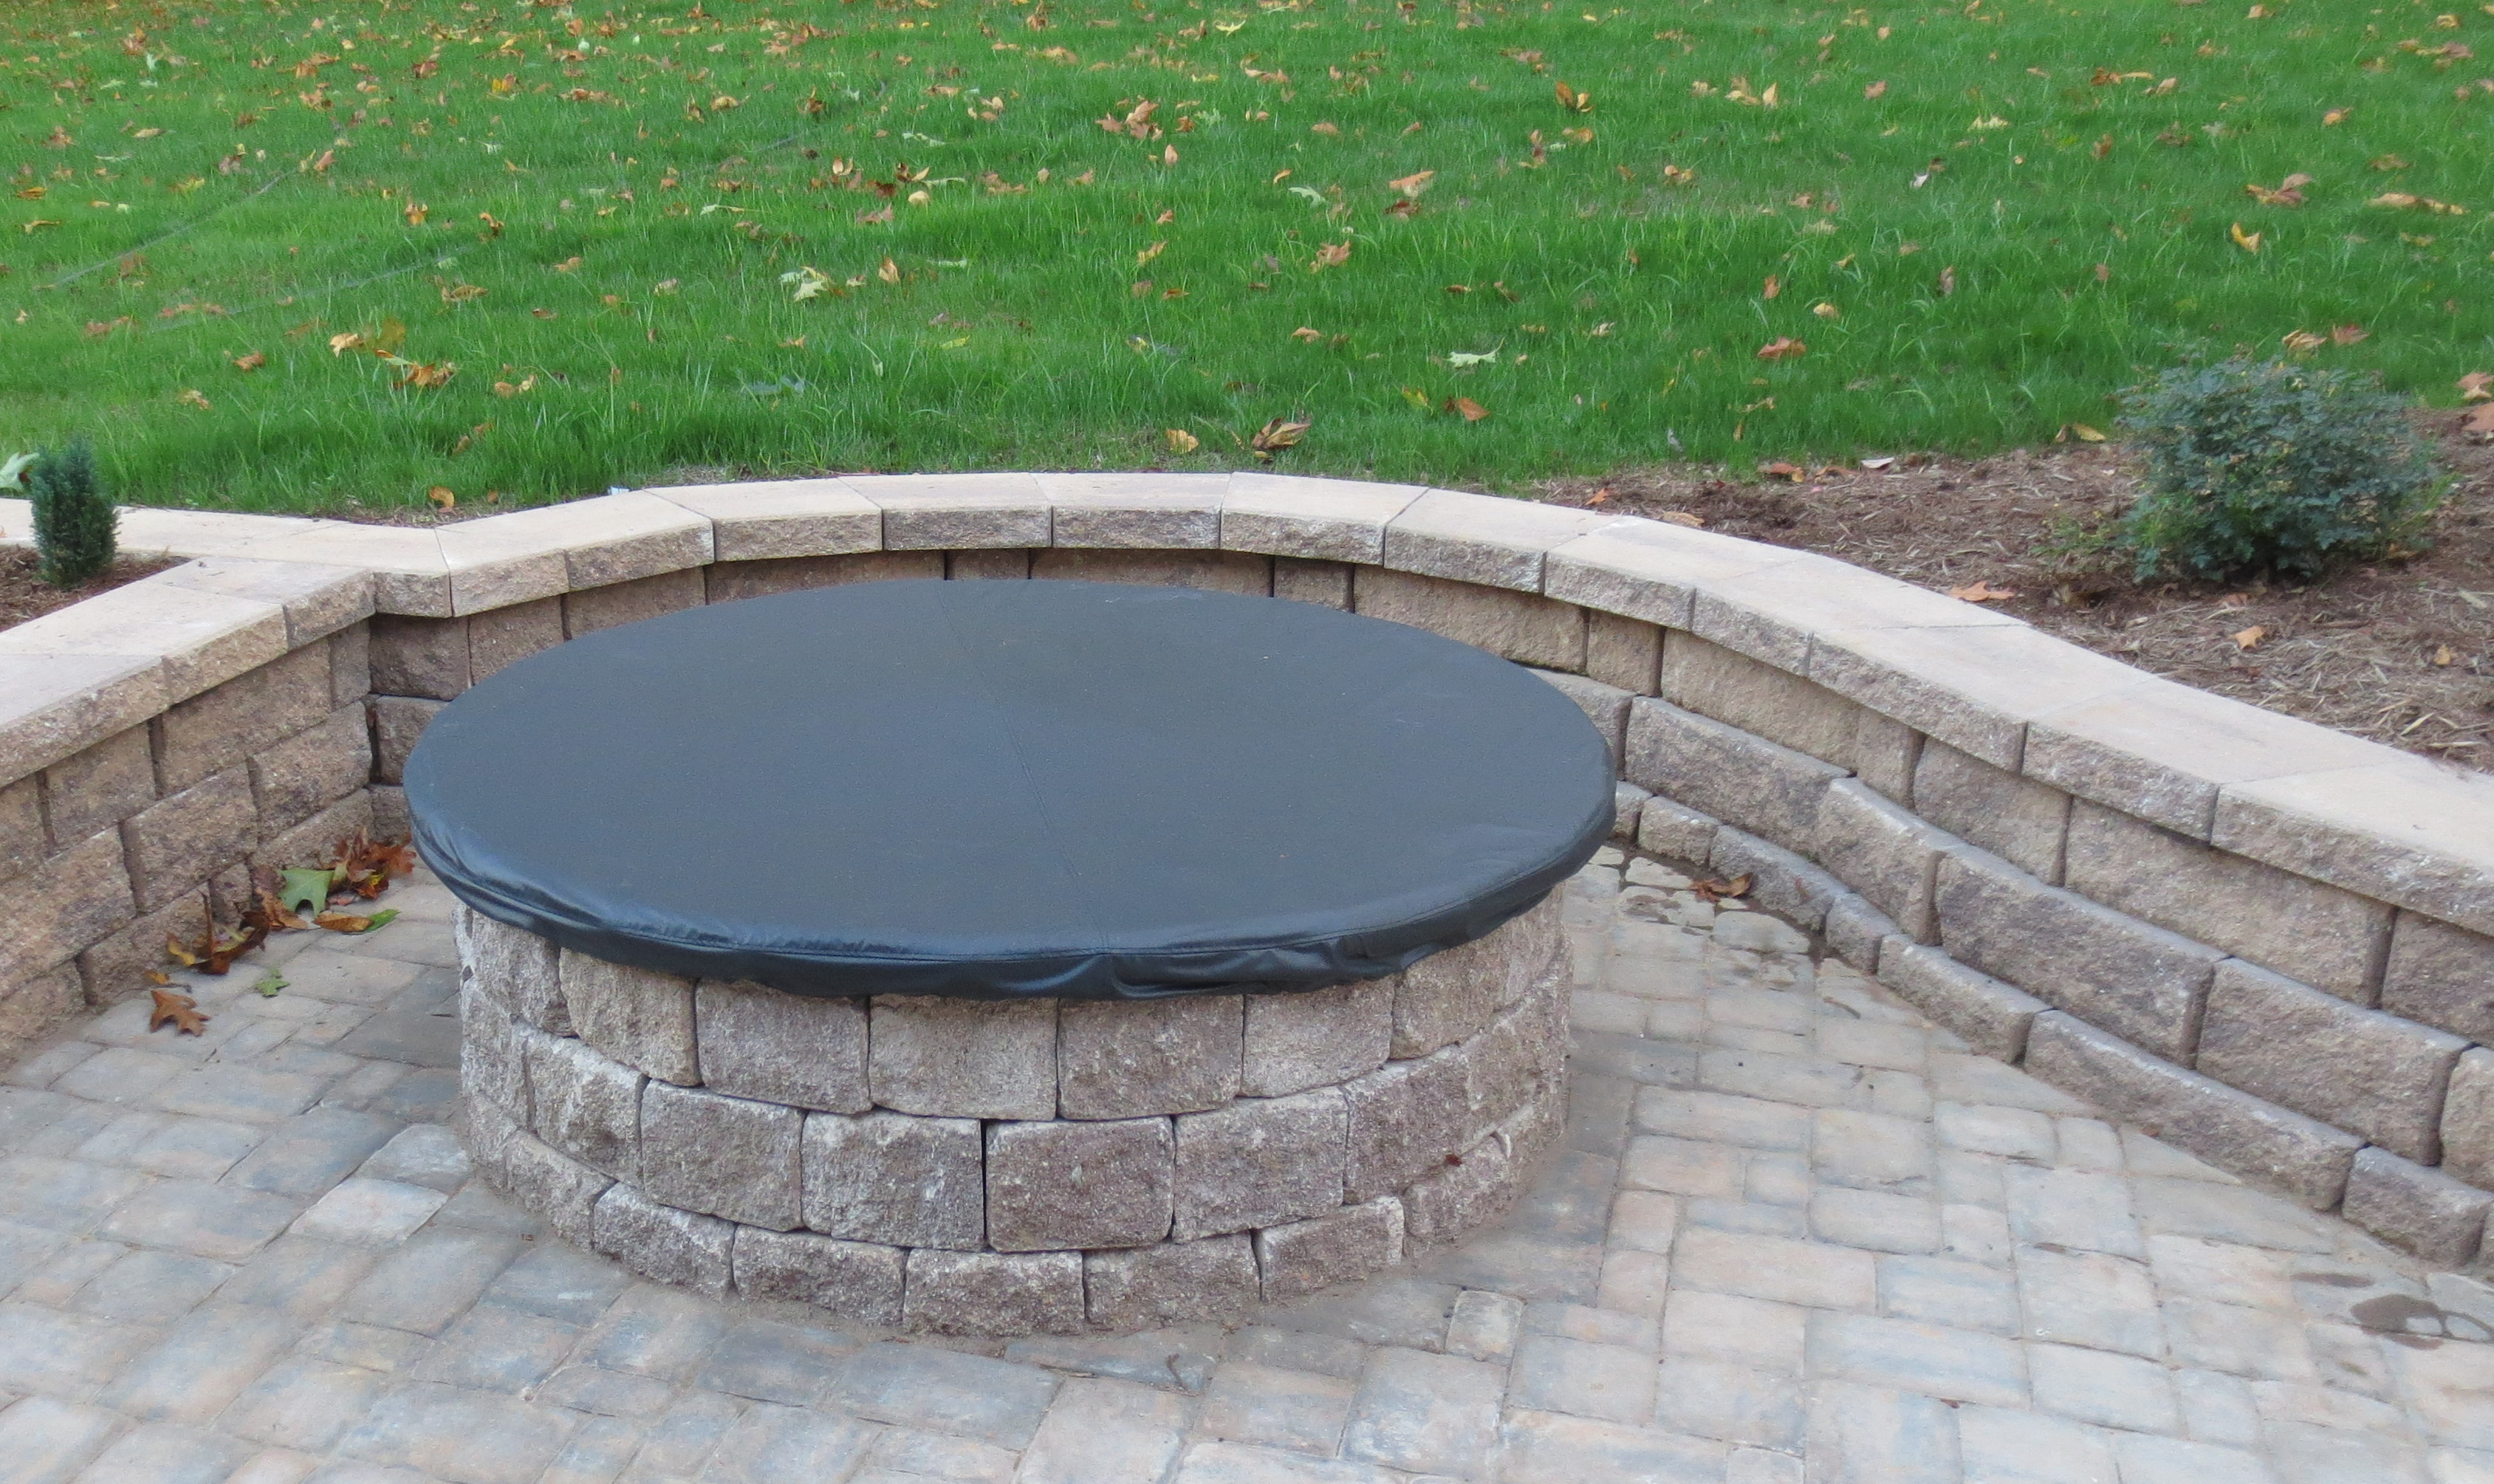 Fire Pit Cover Equip Home Fitness for size 3377 X 2010